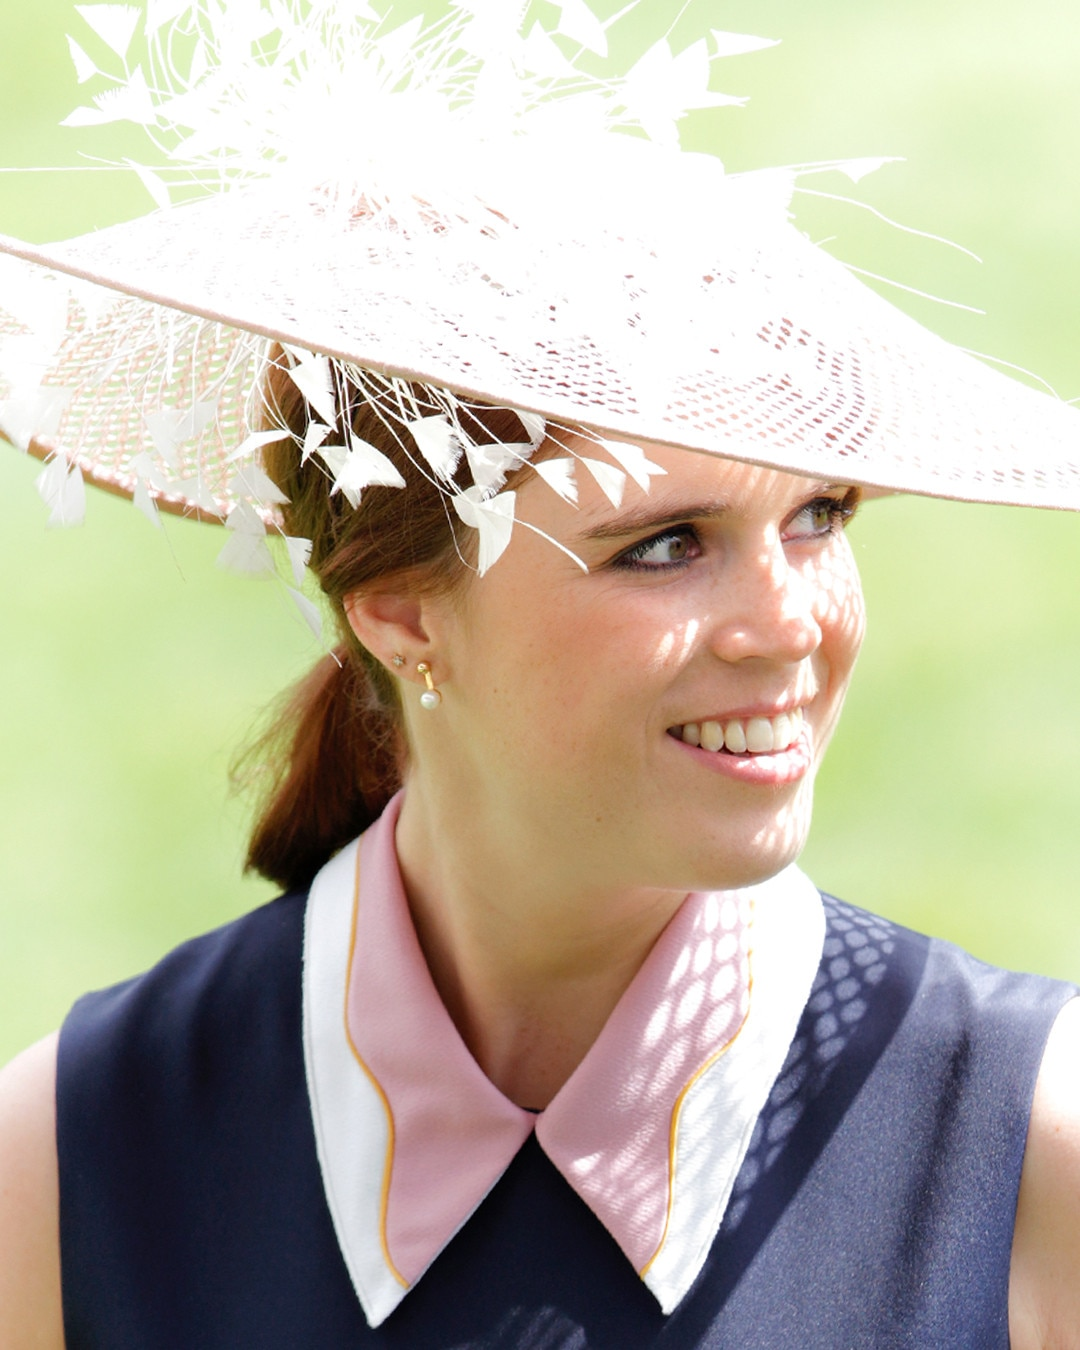 Royal wedding guest list: Who have Princess Eugenie and Jack Brooksbank invited?